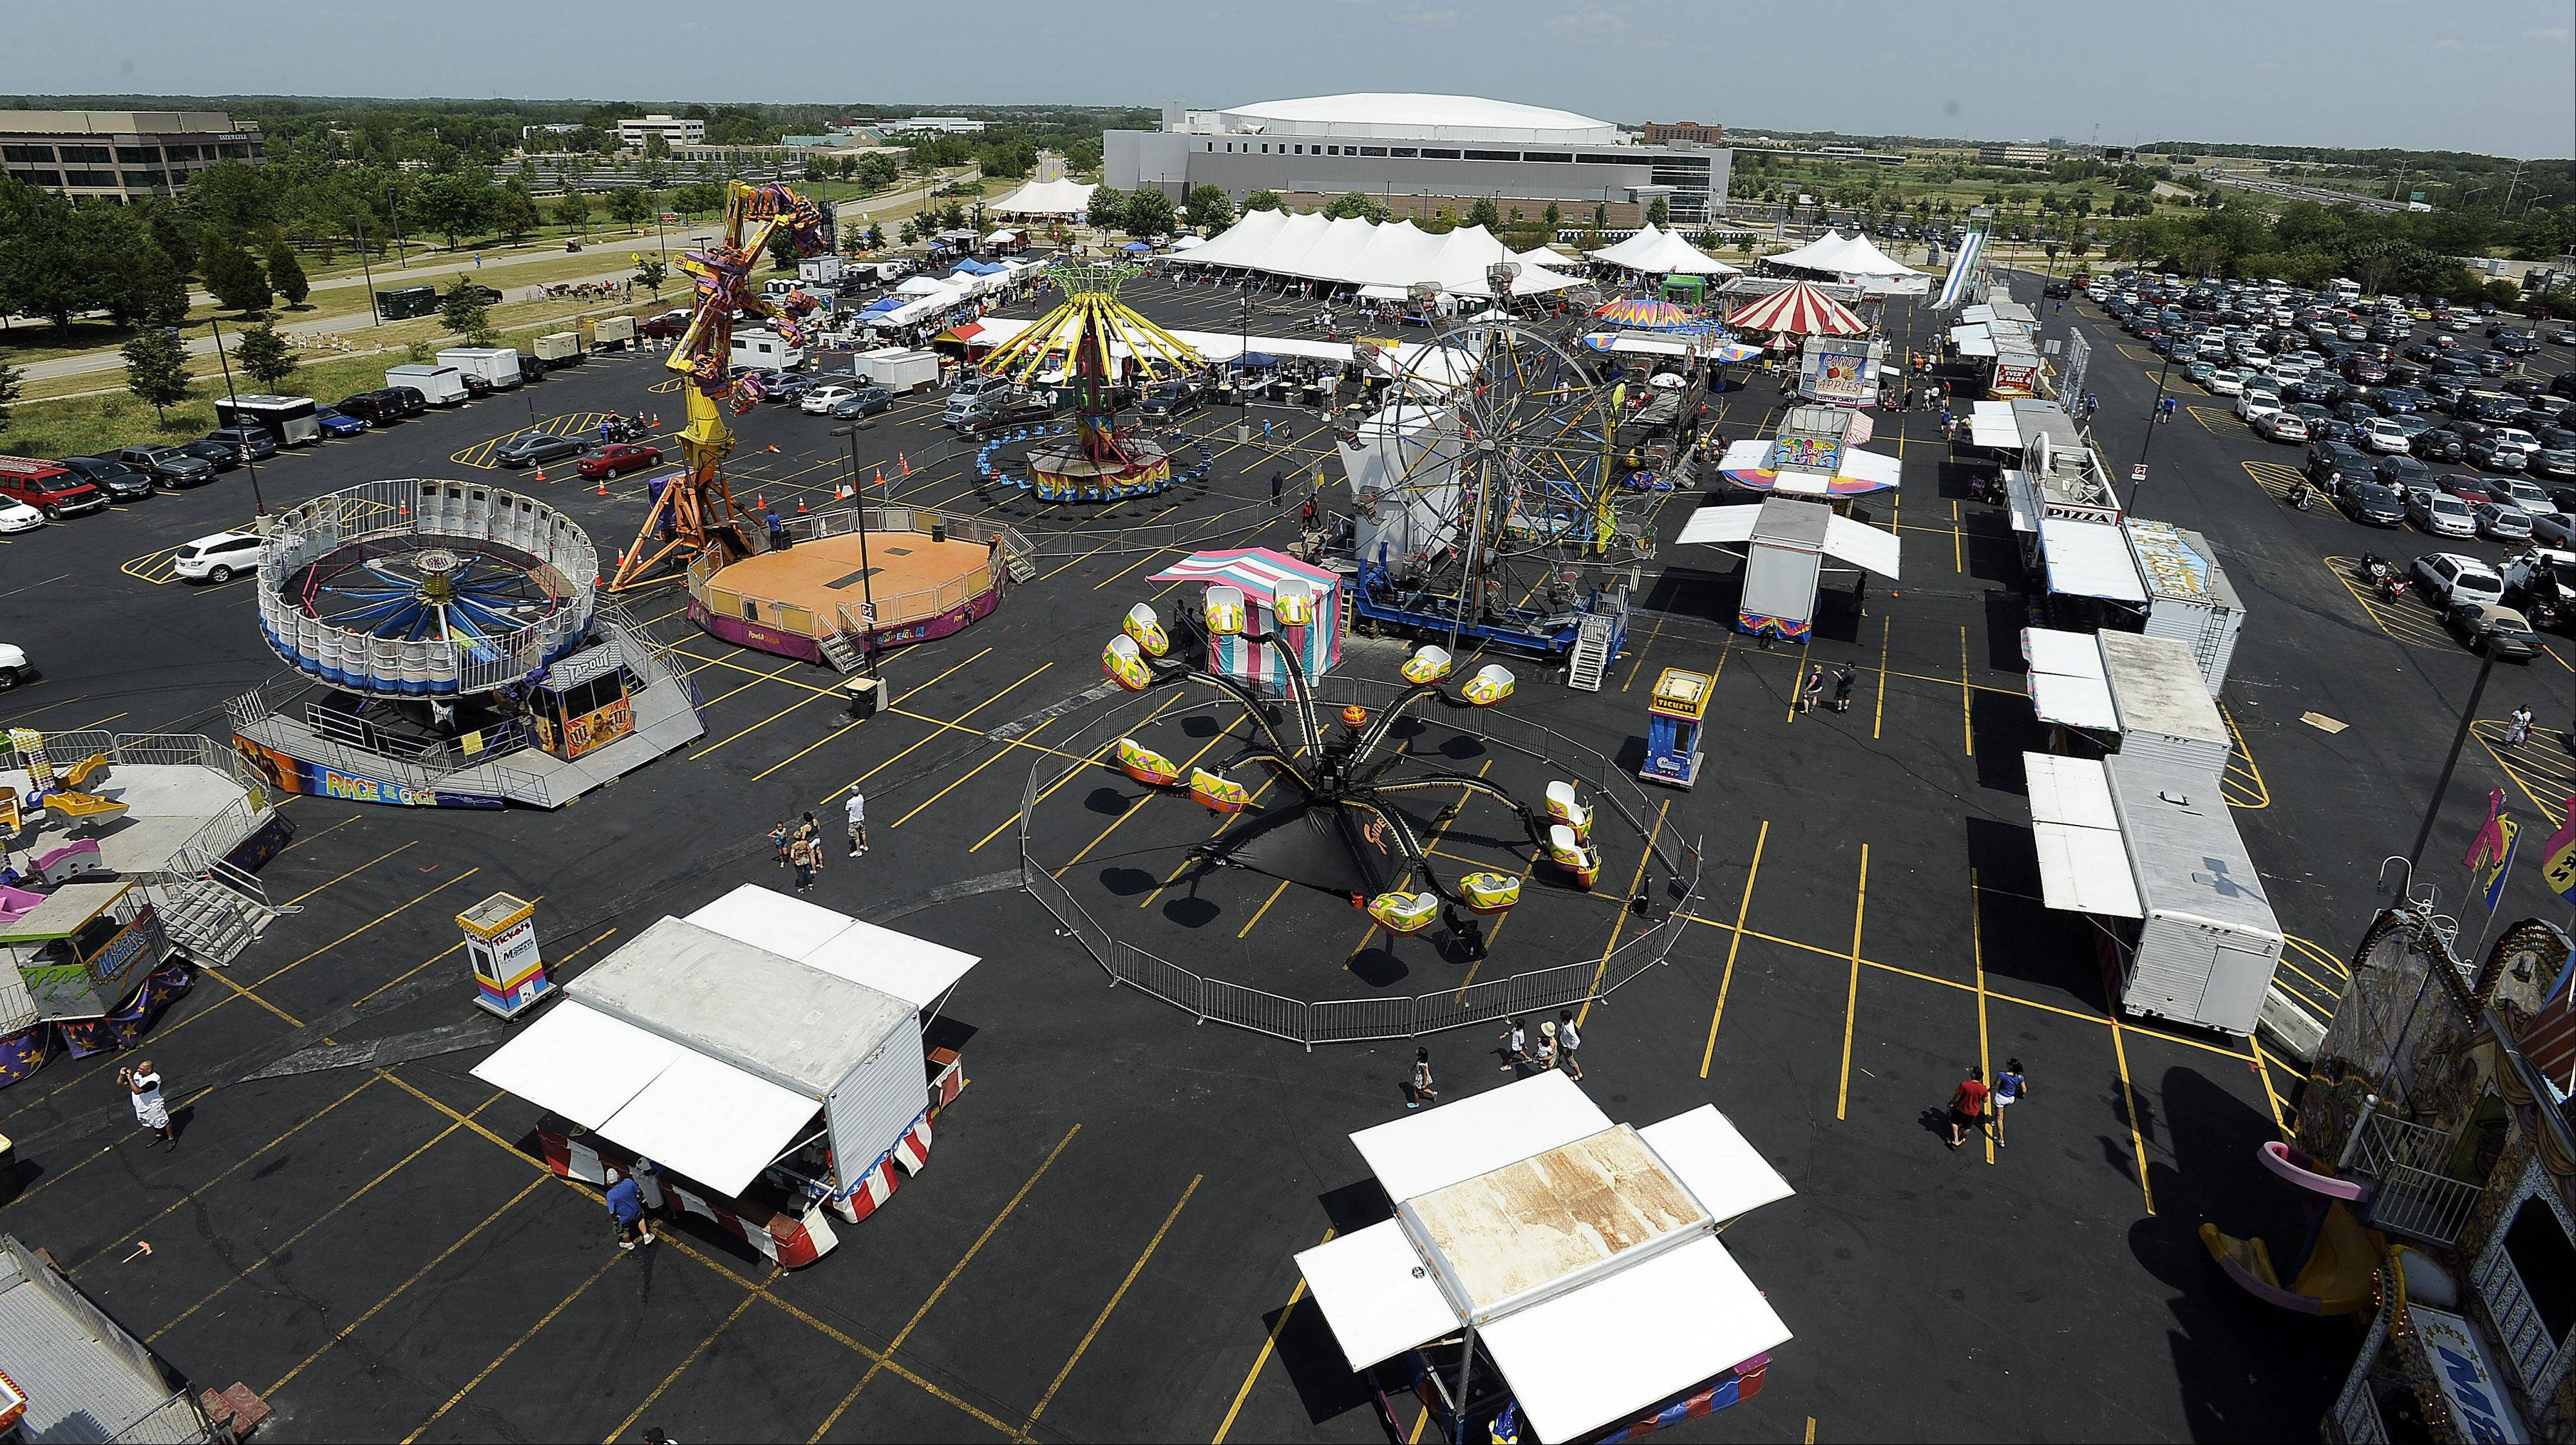 Extreme heat hurt attendance at the first Northwest Fourth Fest held at the Sears Centre Arena. After years of cutbacks in local festivals, several towns and townships cooperated to launch the new event.